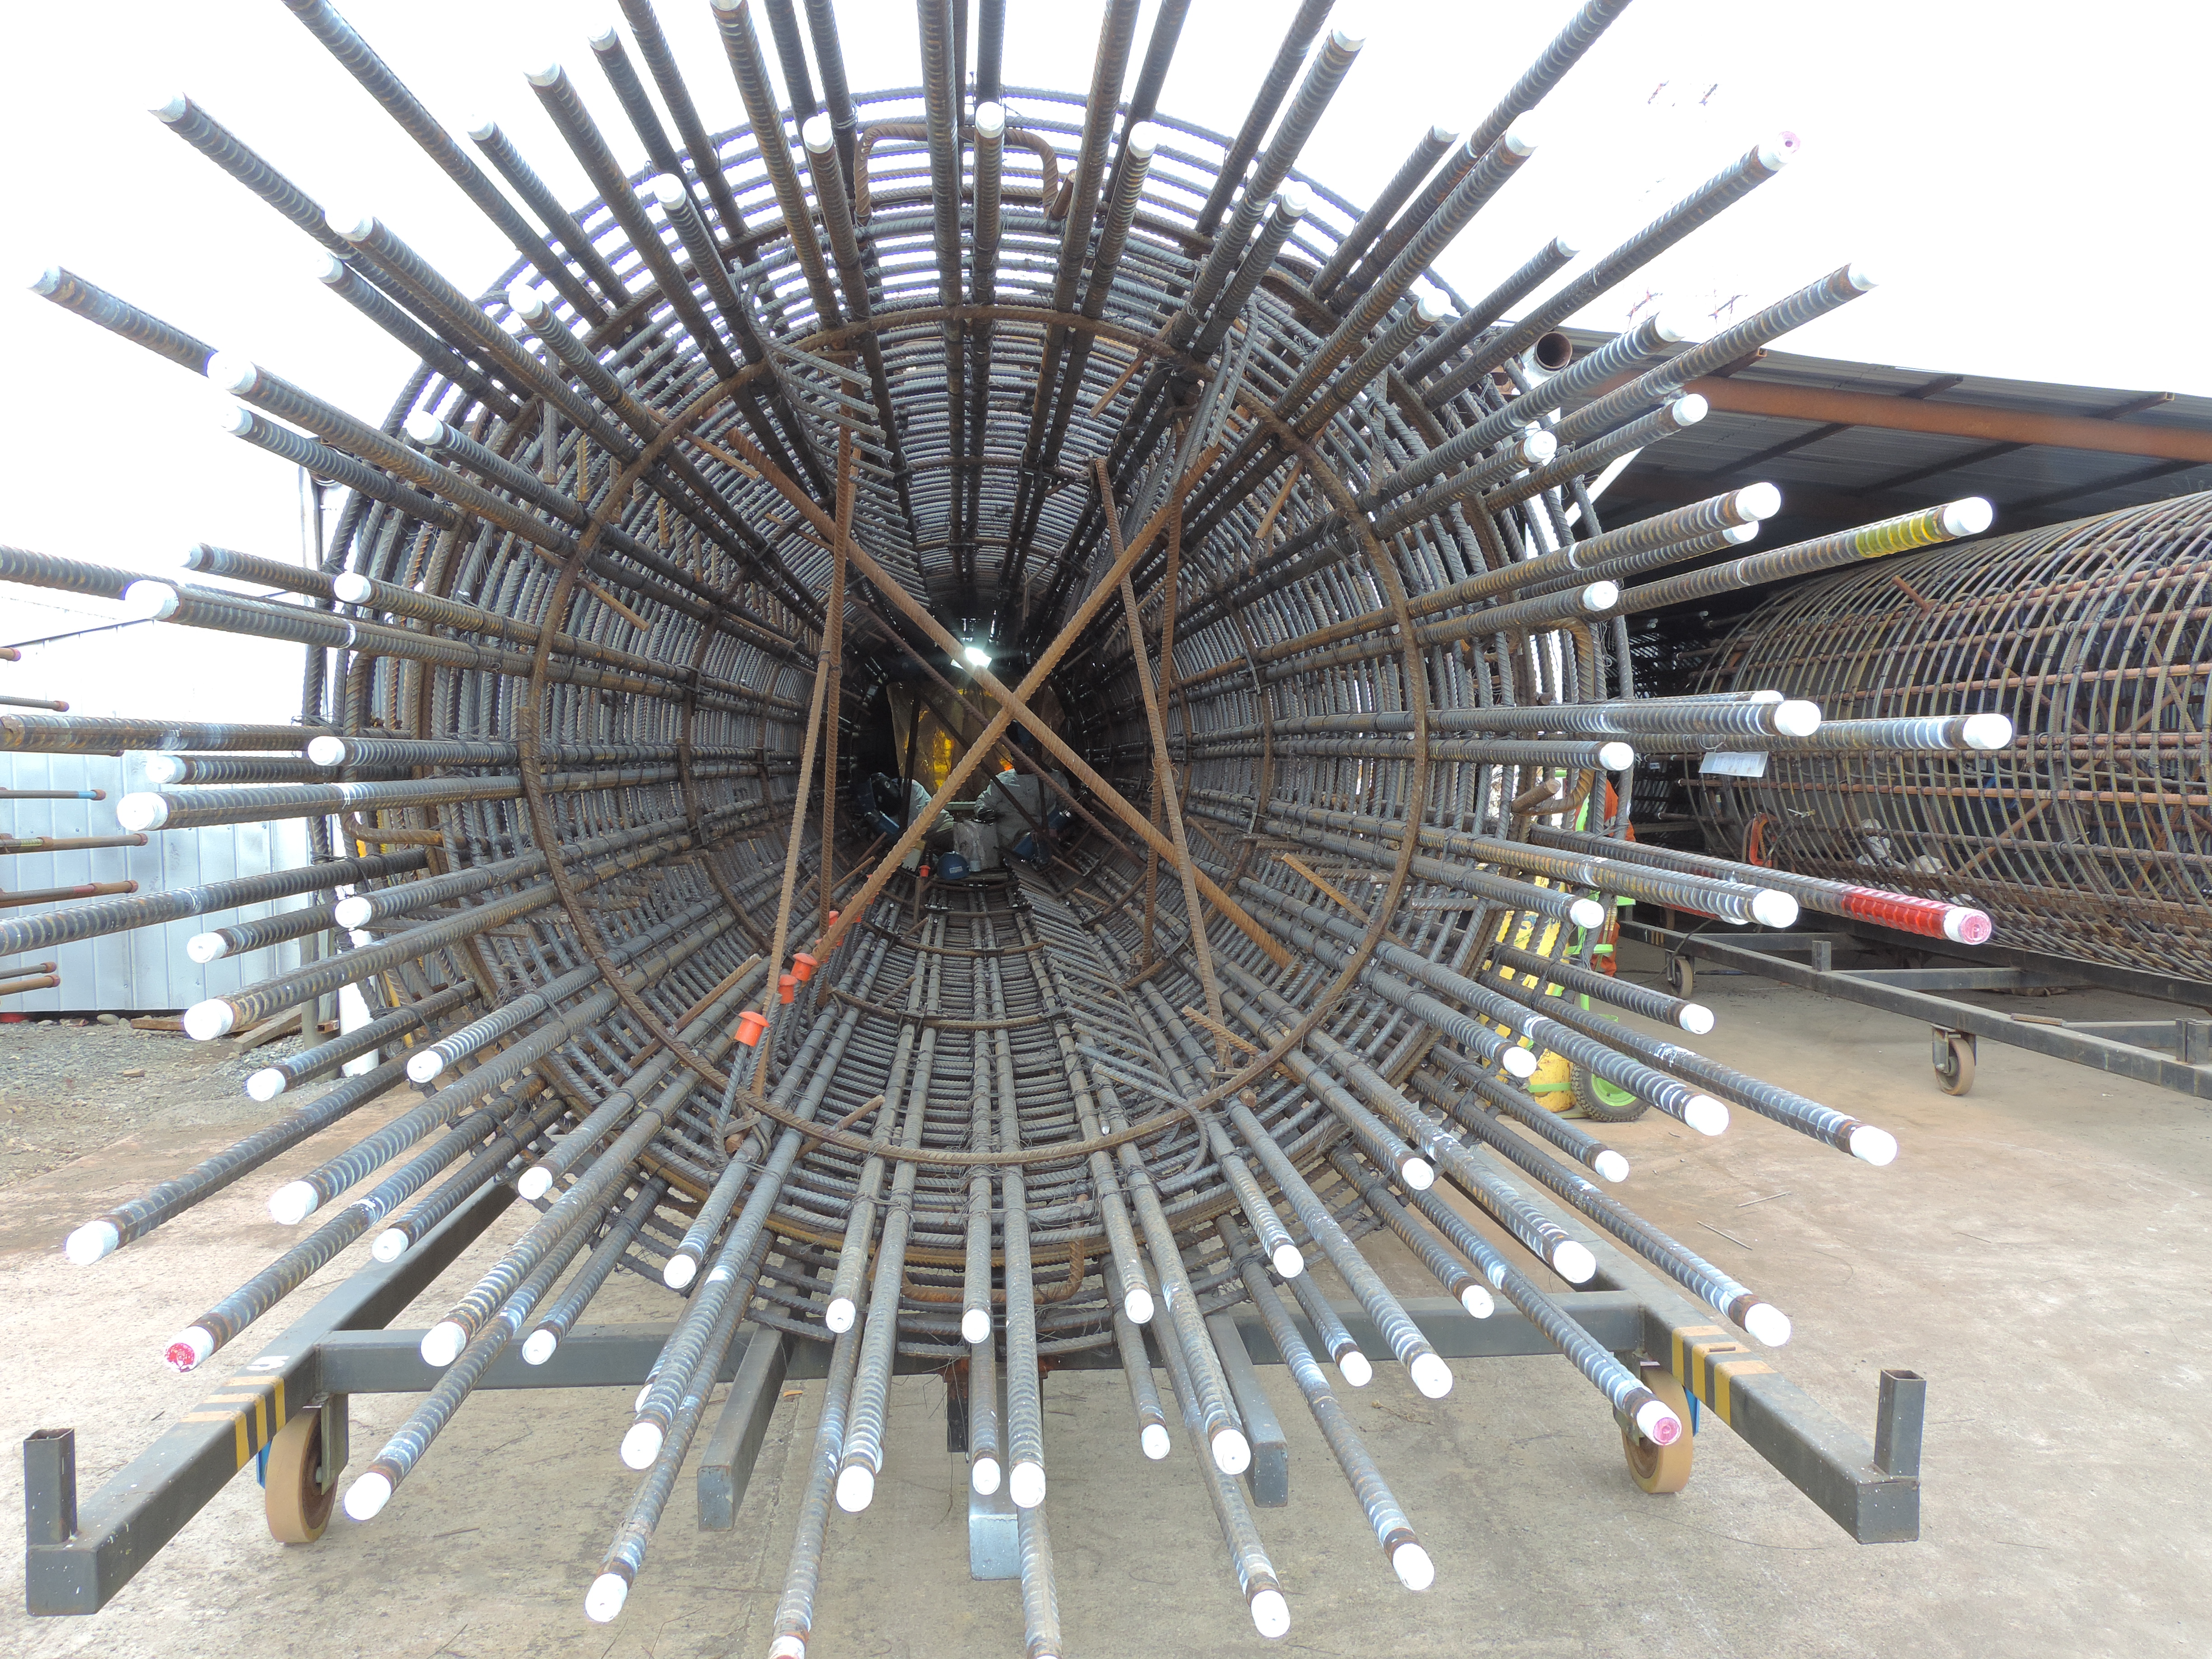 Trevi Chile Spa: assembly of the reinforcement cages and welding of steel casings | Trevi 2